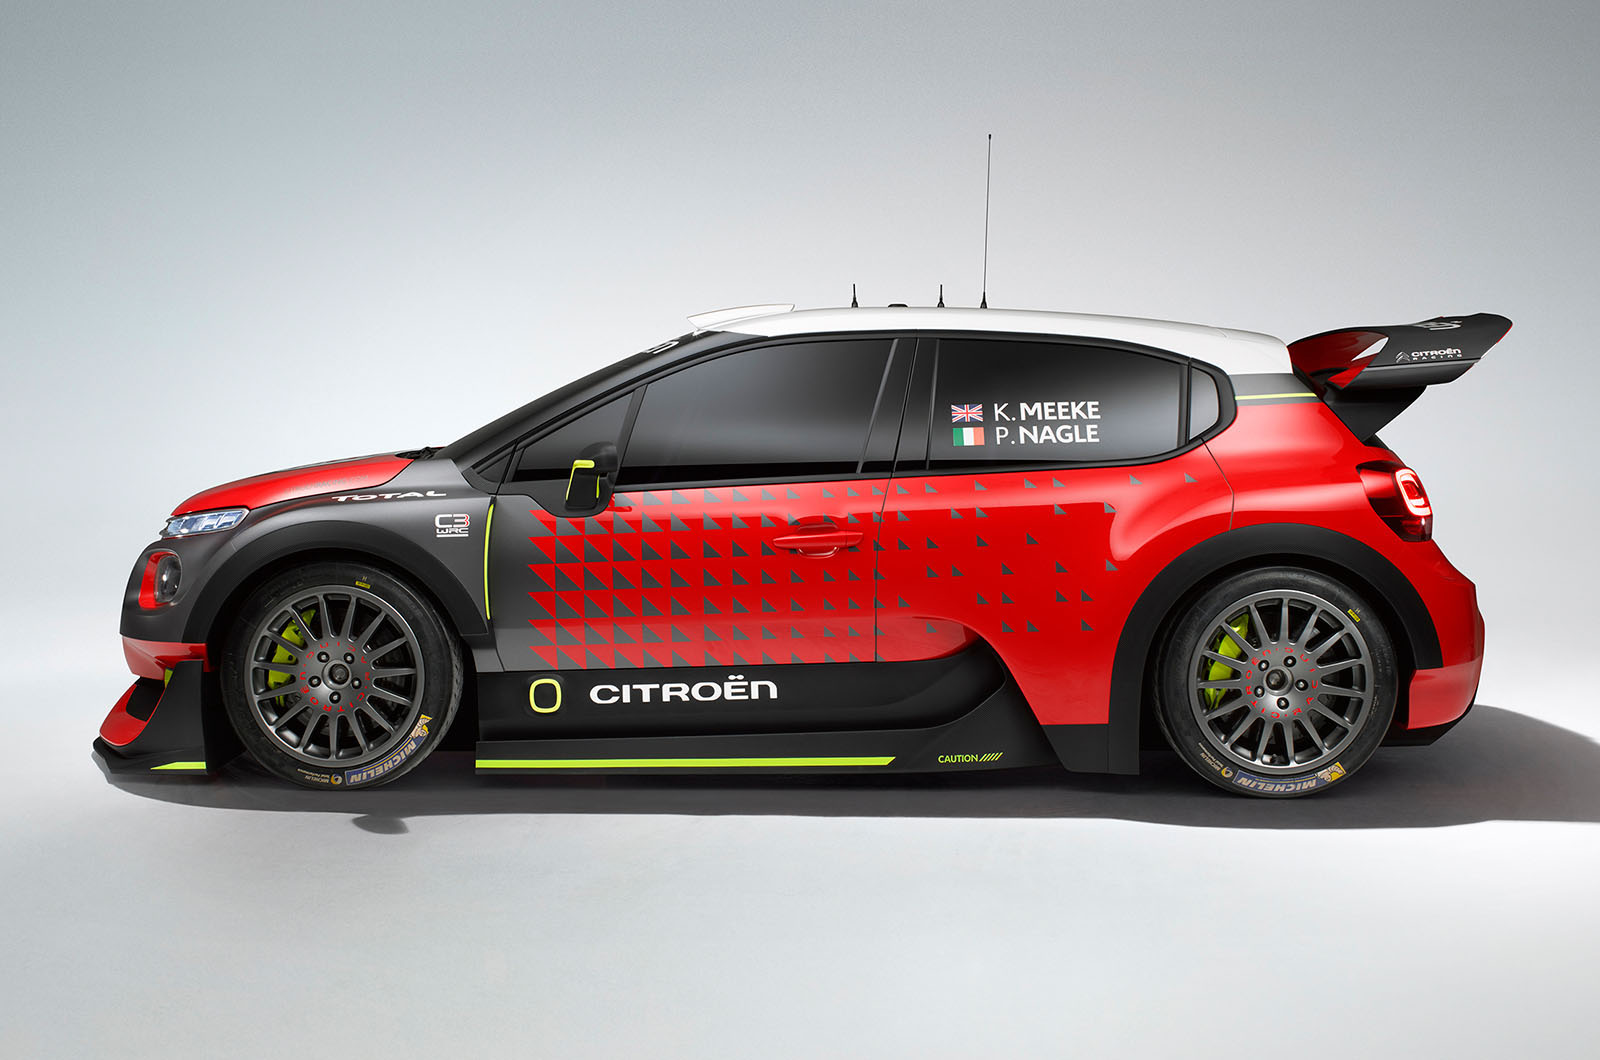 Citroen Wrc Paris Concept Will Spawn Fiesta St Rival